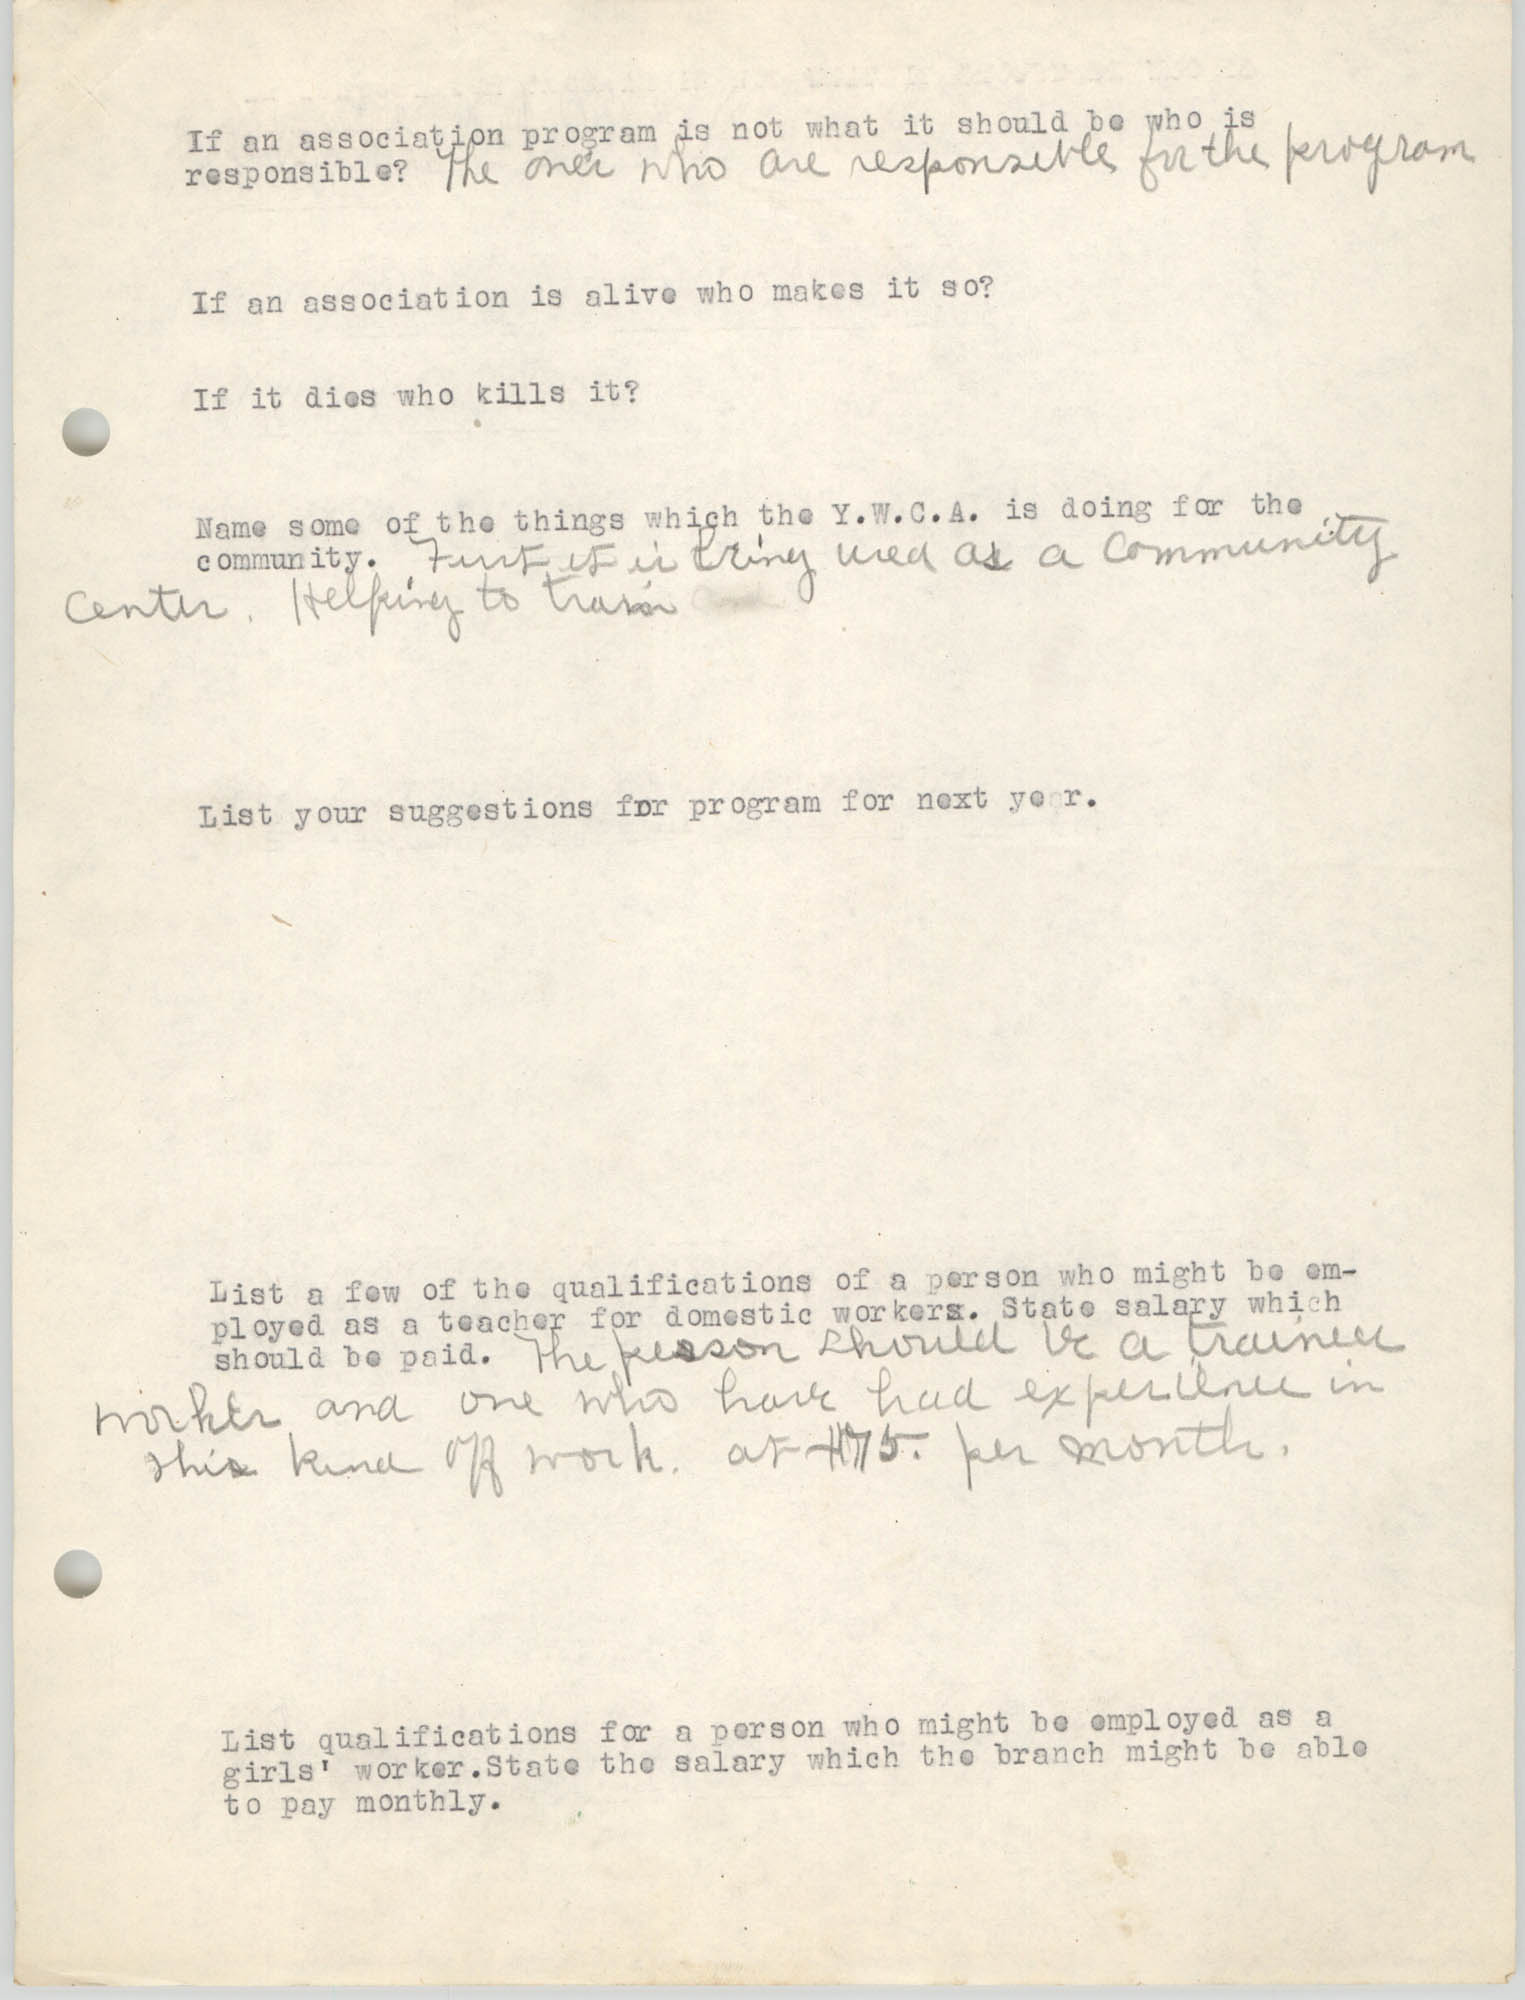 Coming Street Y.W.C.A., Completed Questionnaire Number 4, Page 2